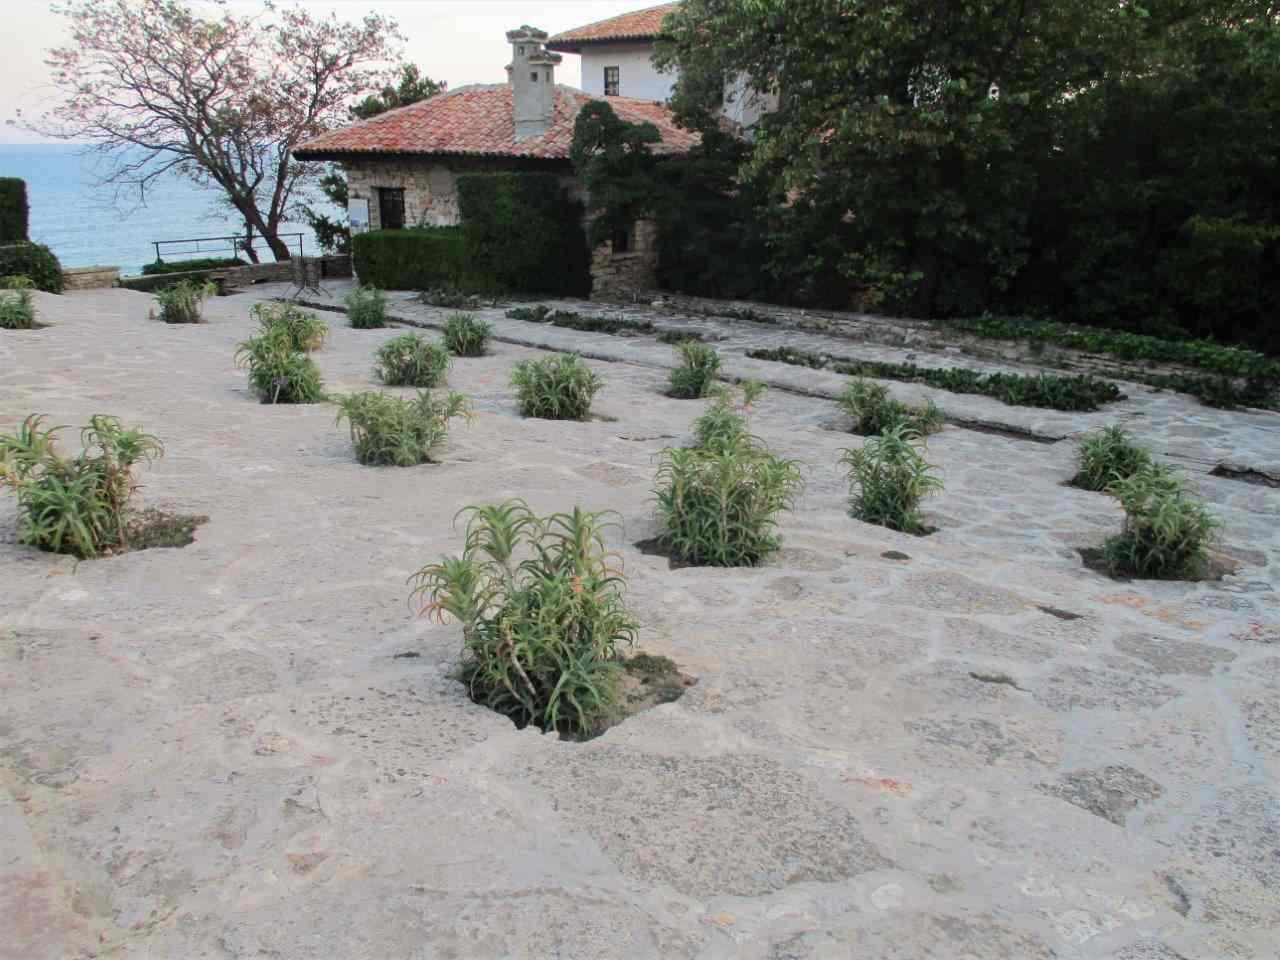 Aloe arborescens set into the stone paving